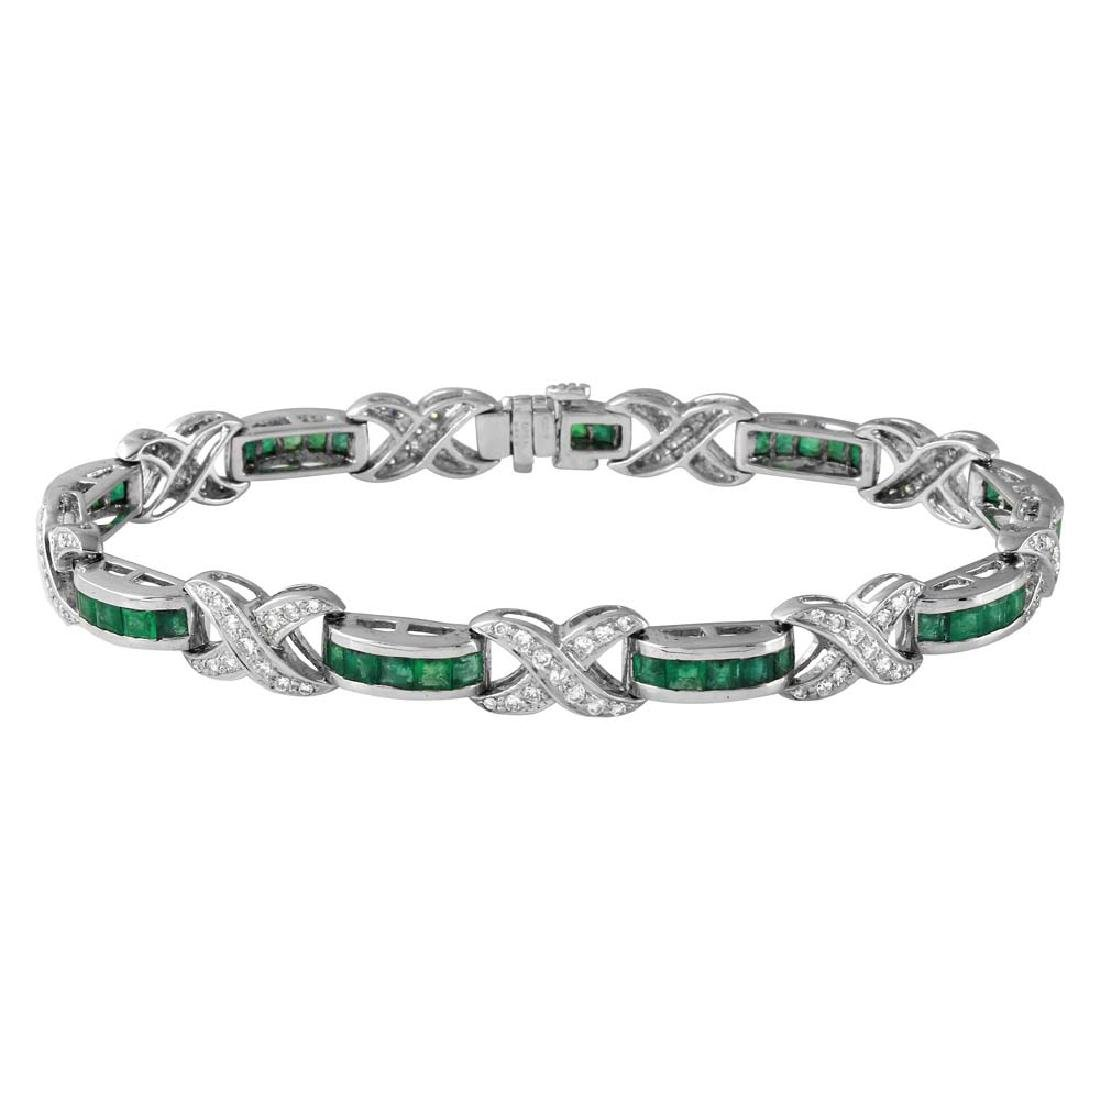 Genuine 1.21 TCW 18K White Gold Ladies Bracelet